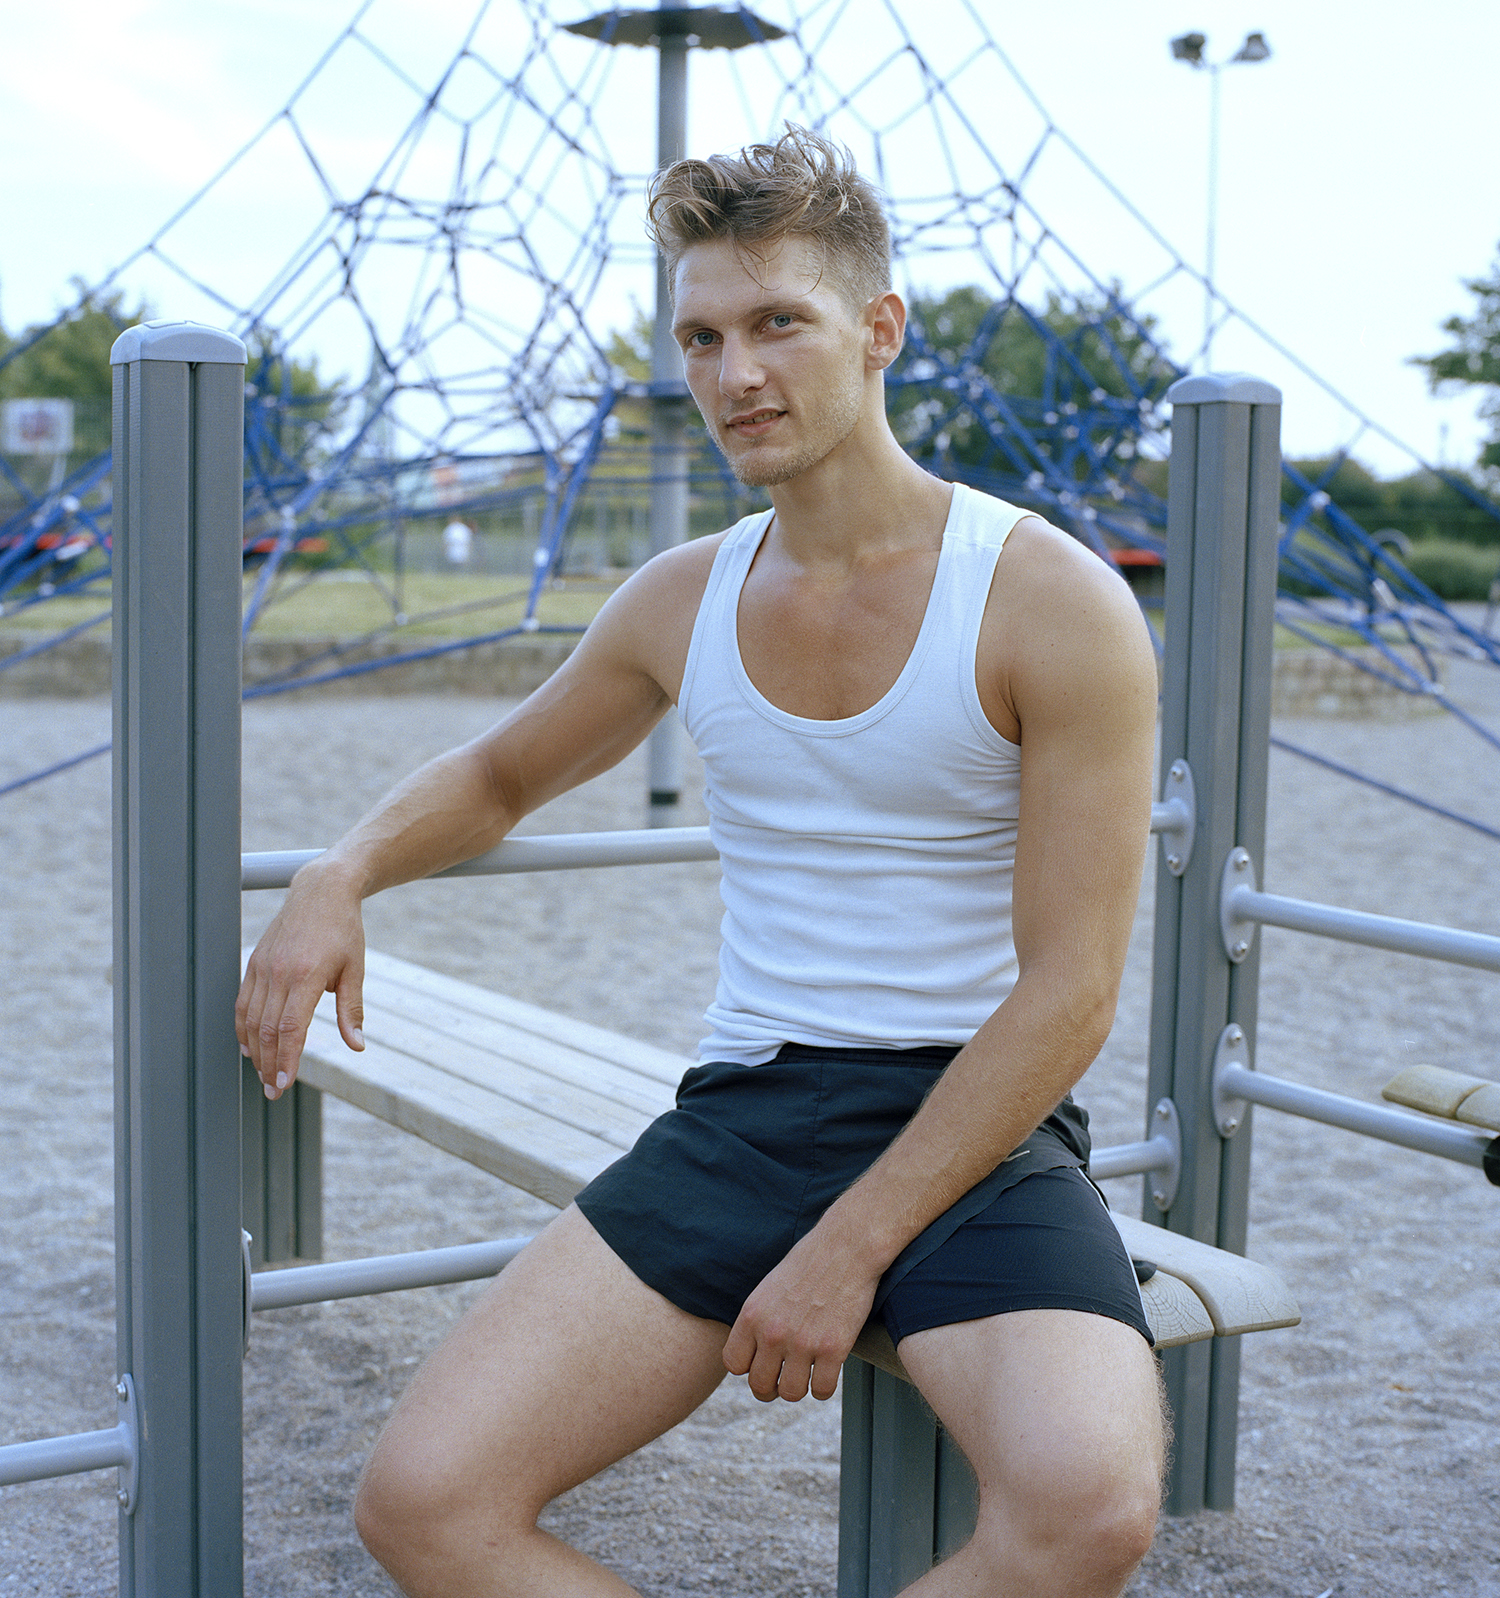 Workout by Christiania, 2012